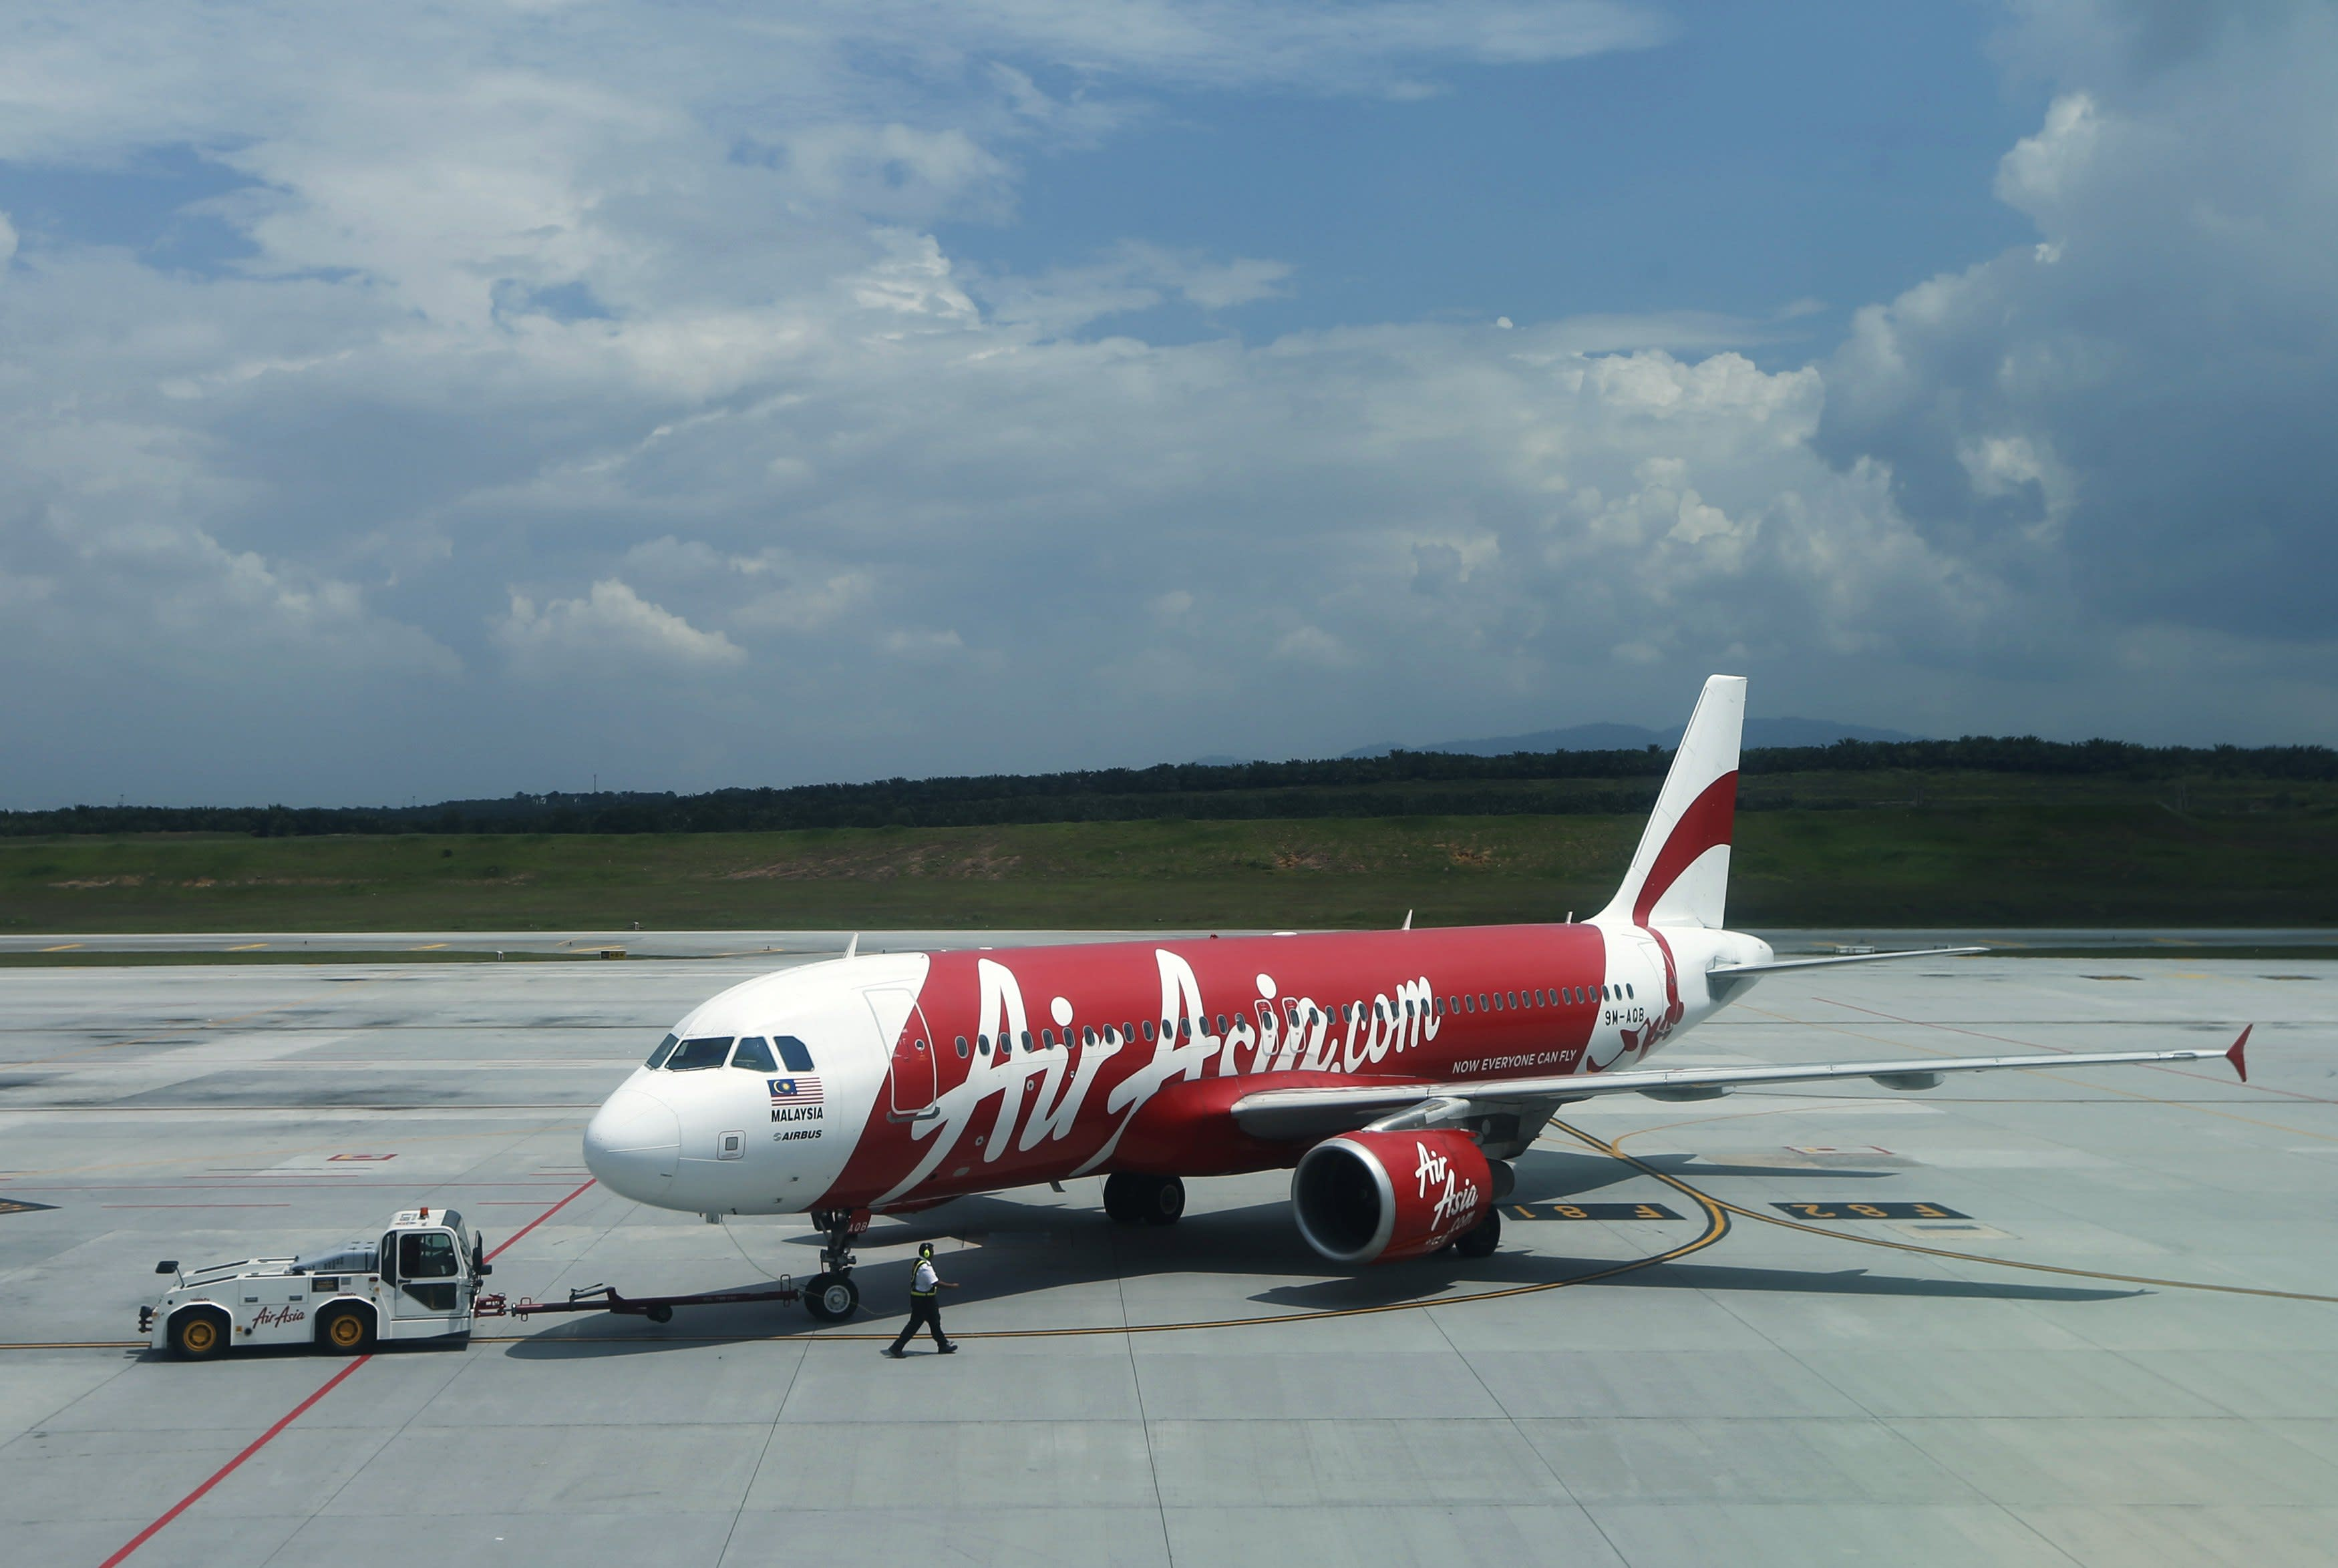 Search launched for missing AirAsia jet QZ8501 bound for Singapore from Indonesia